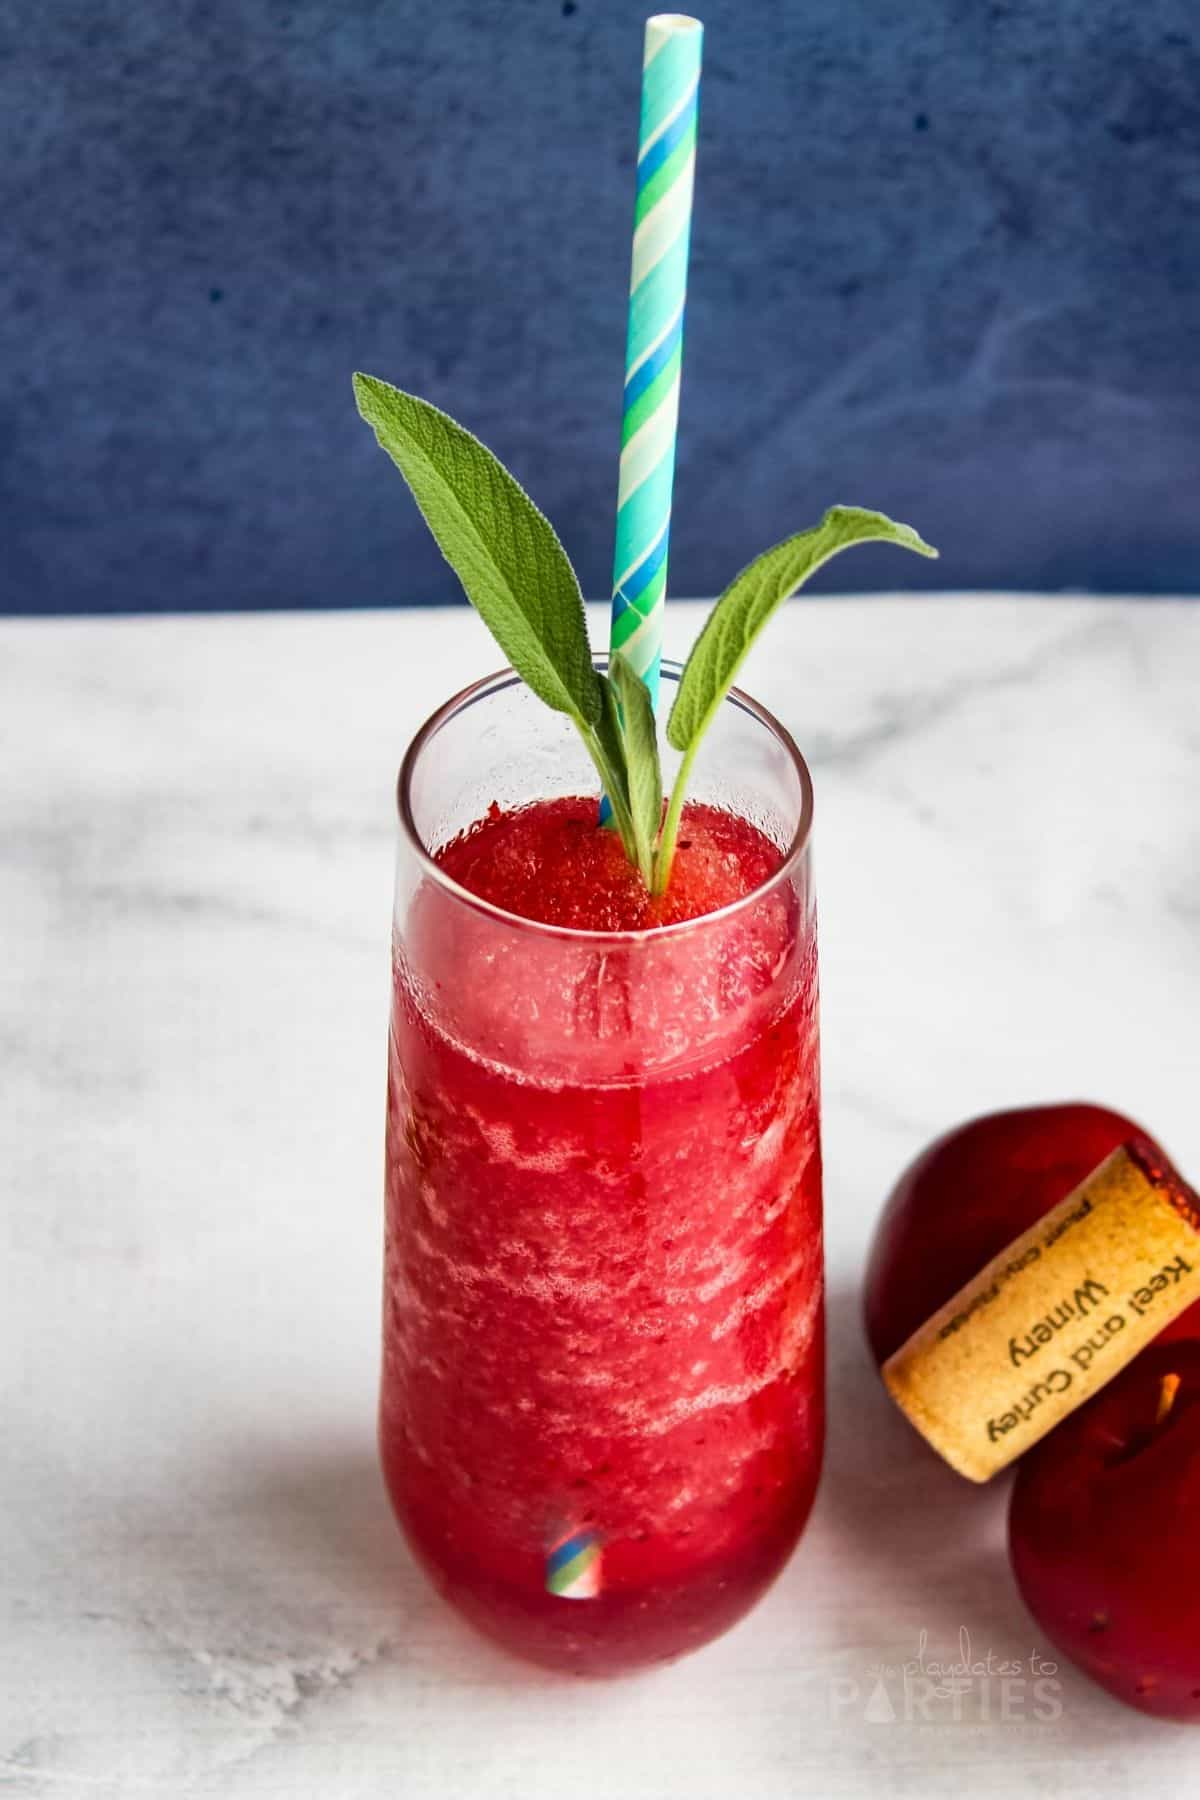 a bright red wine slushie in a stemless champagne flute garnished with basil and a colorful paper straw sitting next to fresh plums